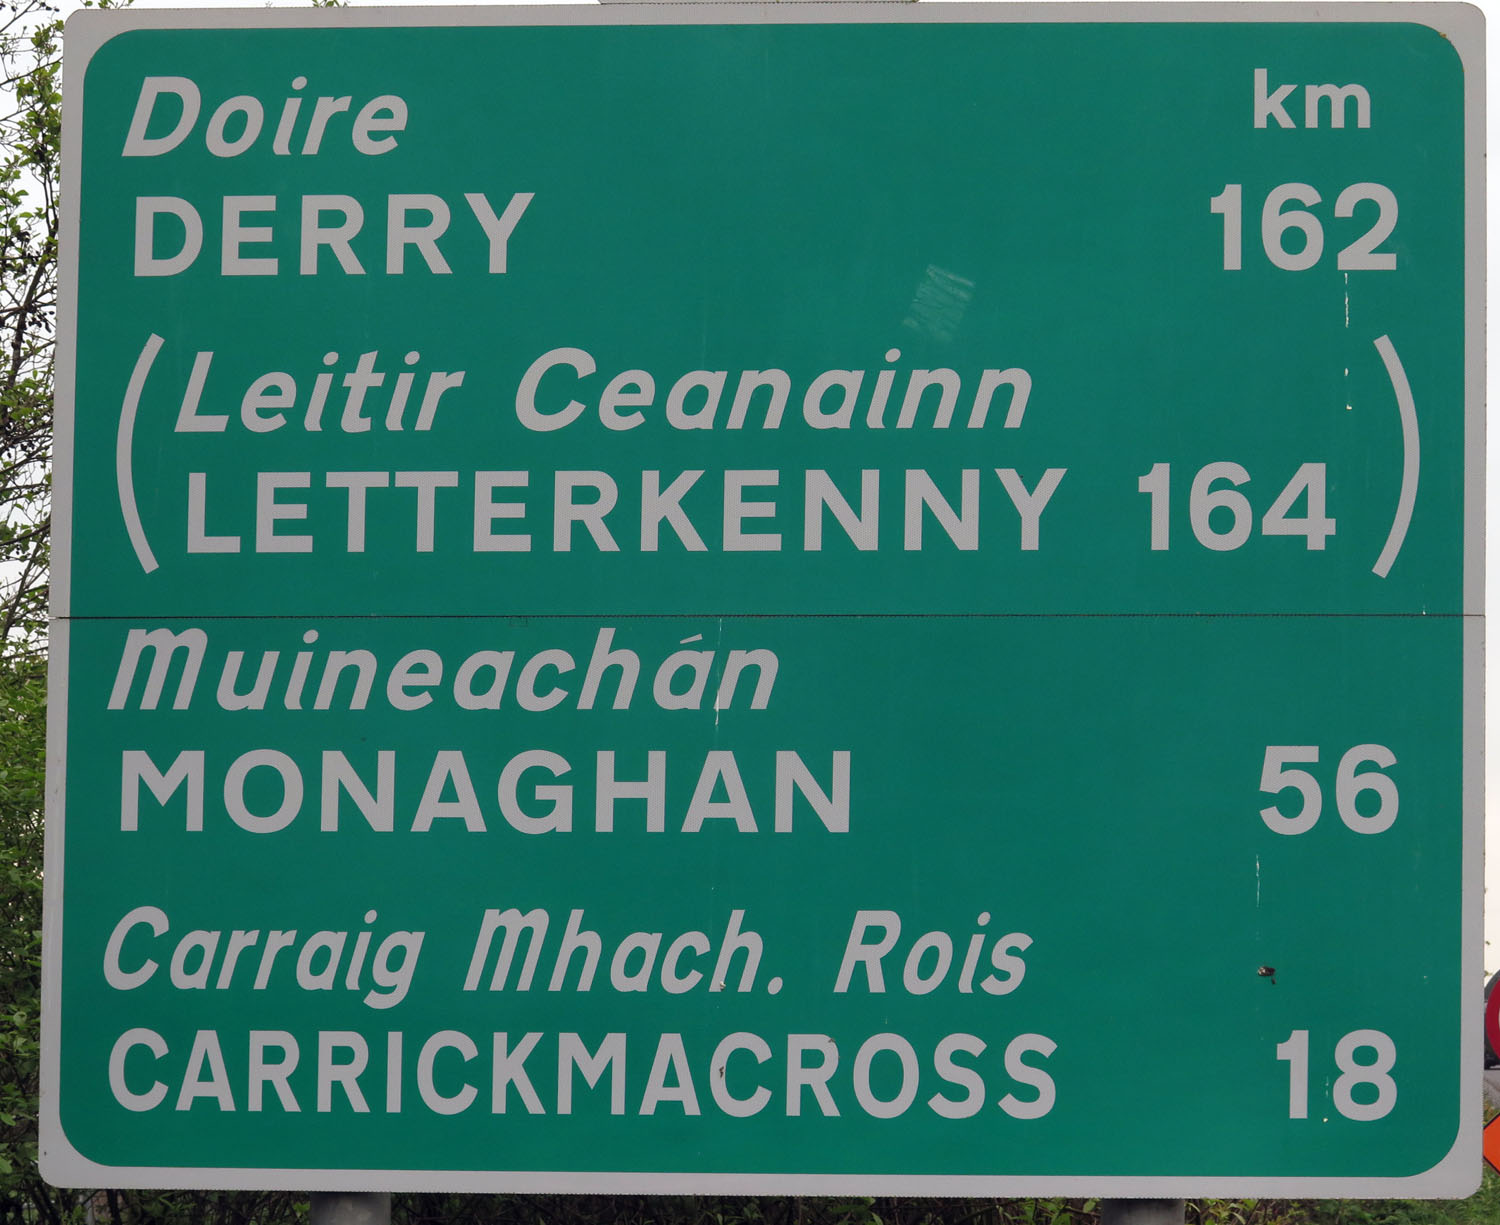 Northern-Ireland-Derry-Londonderry-Road-Sign-In-Republic-Of-Ireland